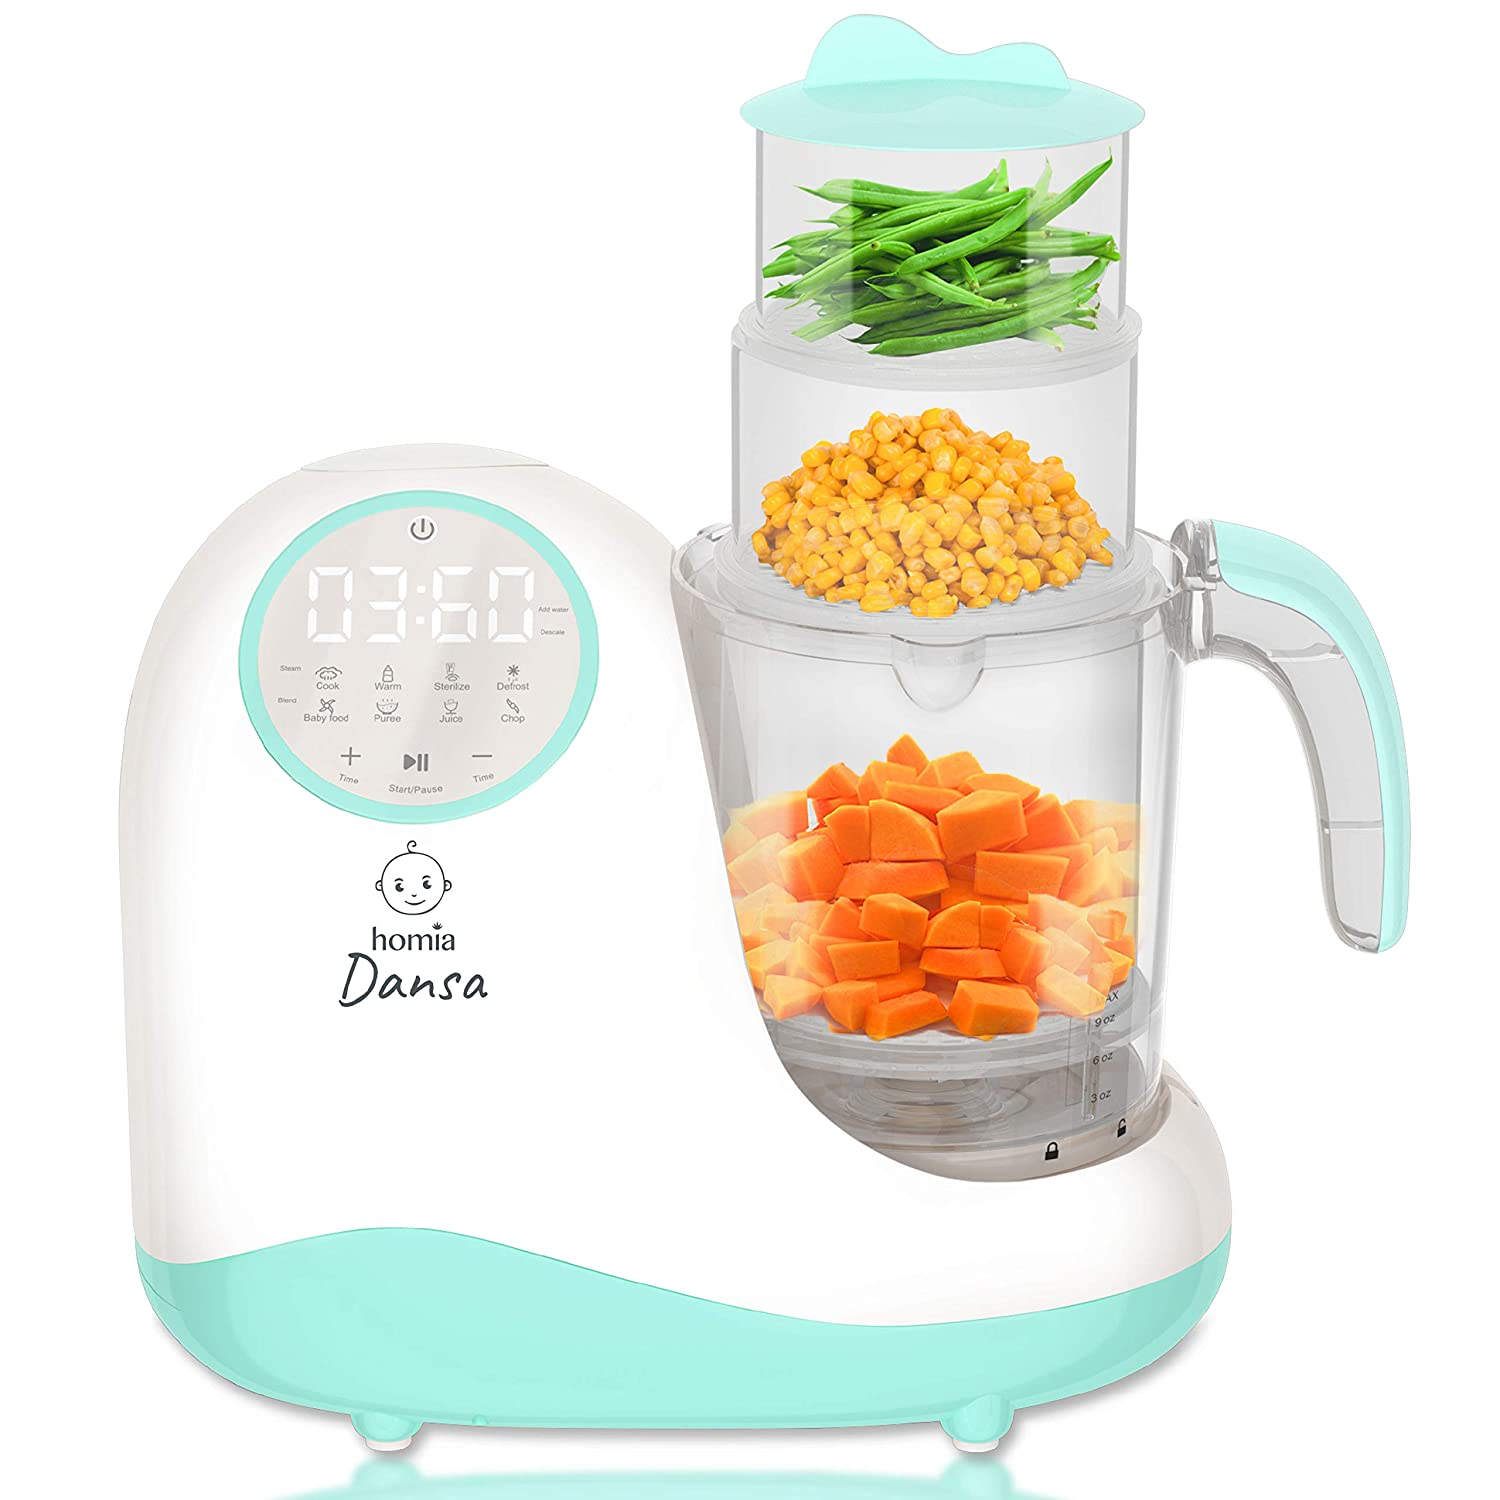 NOT for USA 220V - Baby Food Maker Chopper Grinder - Mills and Steamer 8 in 1 Processor for Toddlers - Steam, Blend, Chop, Disinfect, Clean, 20 Oz Tritan Stirring Cup,Touch Control Panel,Auto Shut-Off